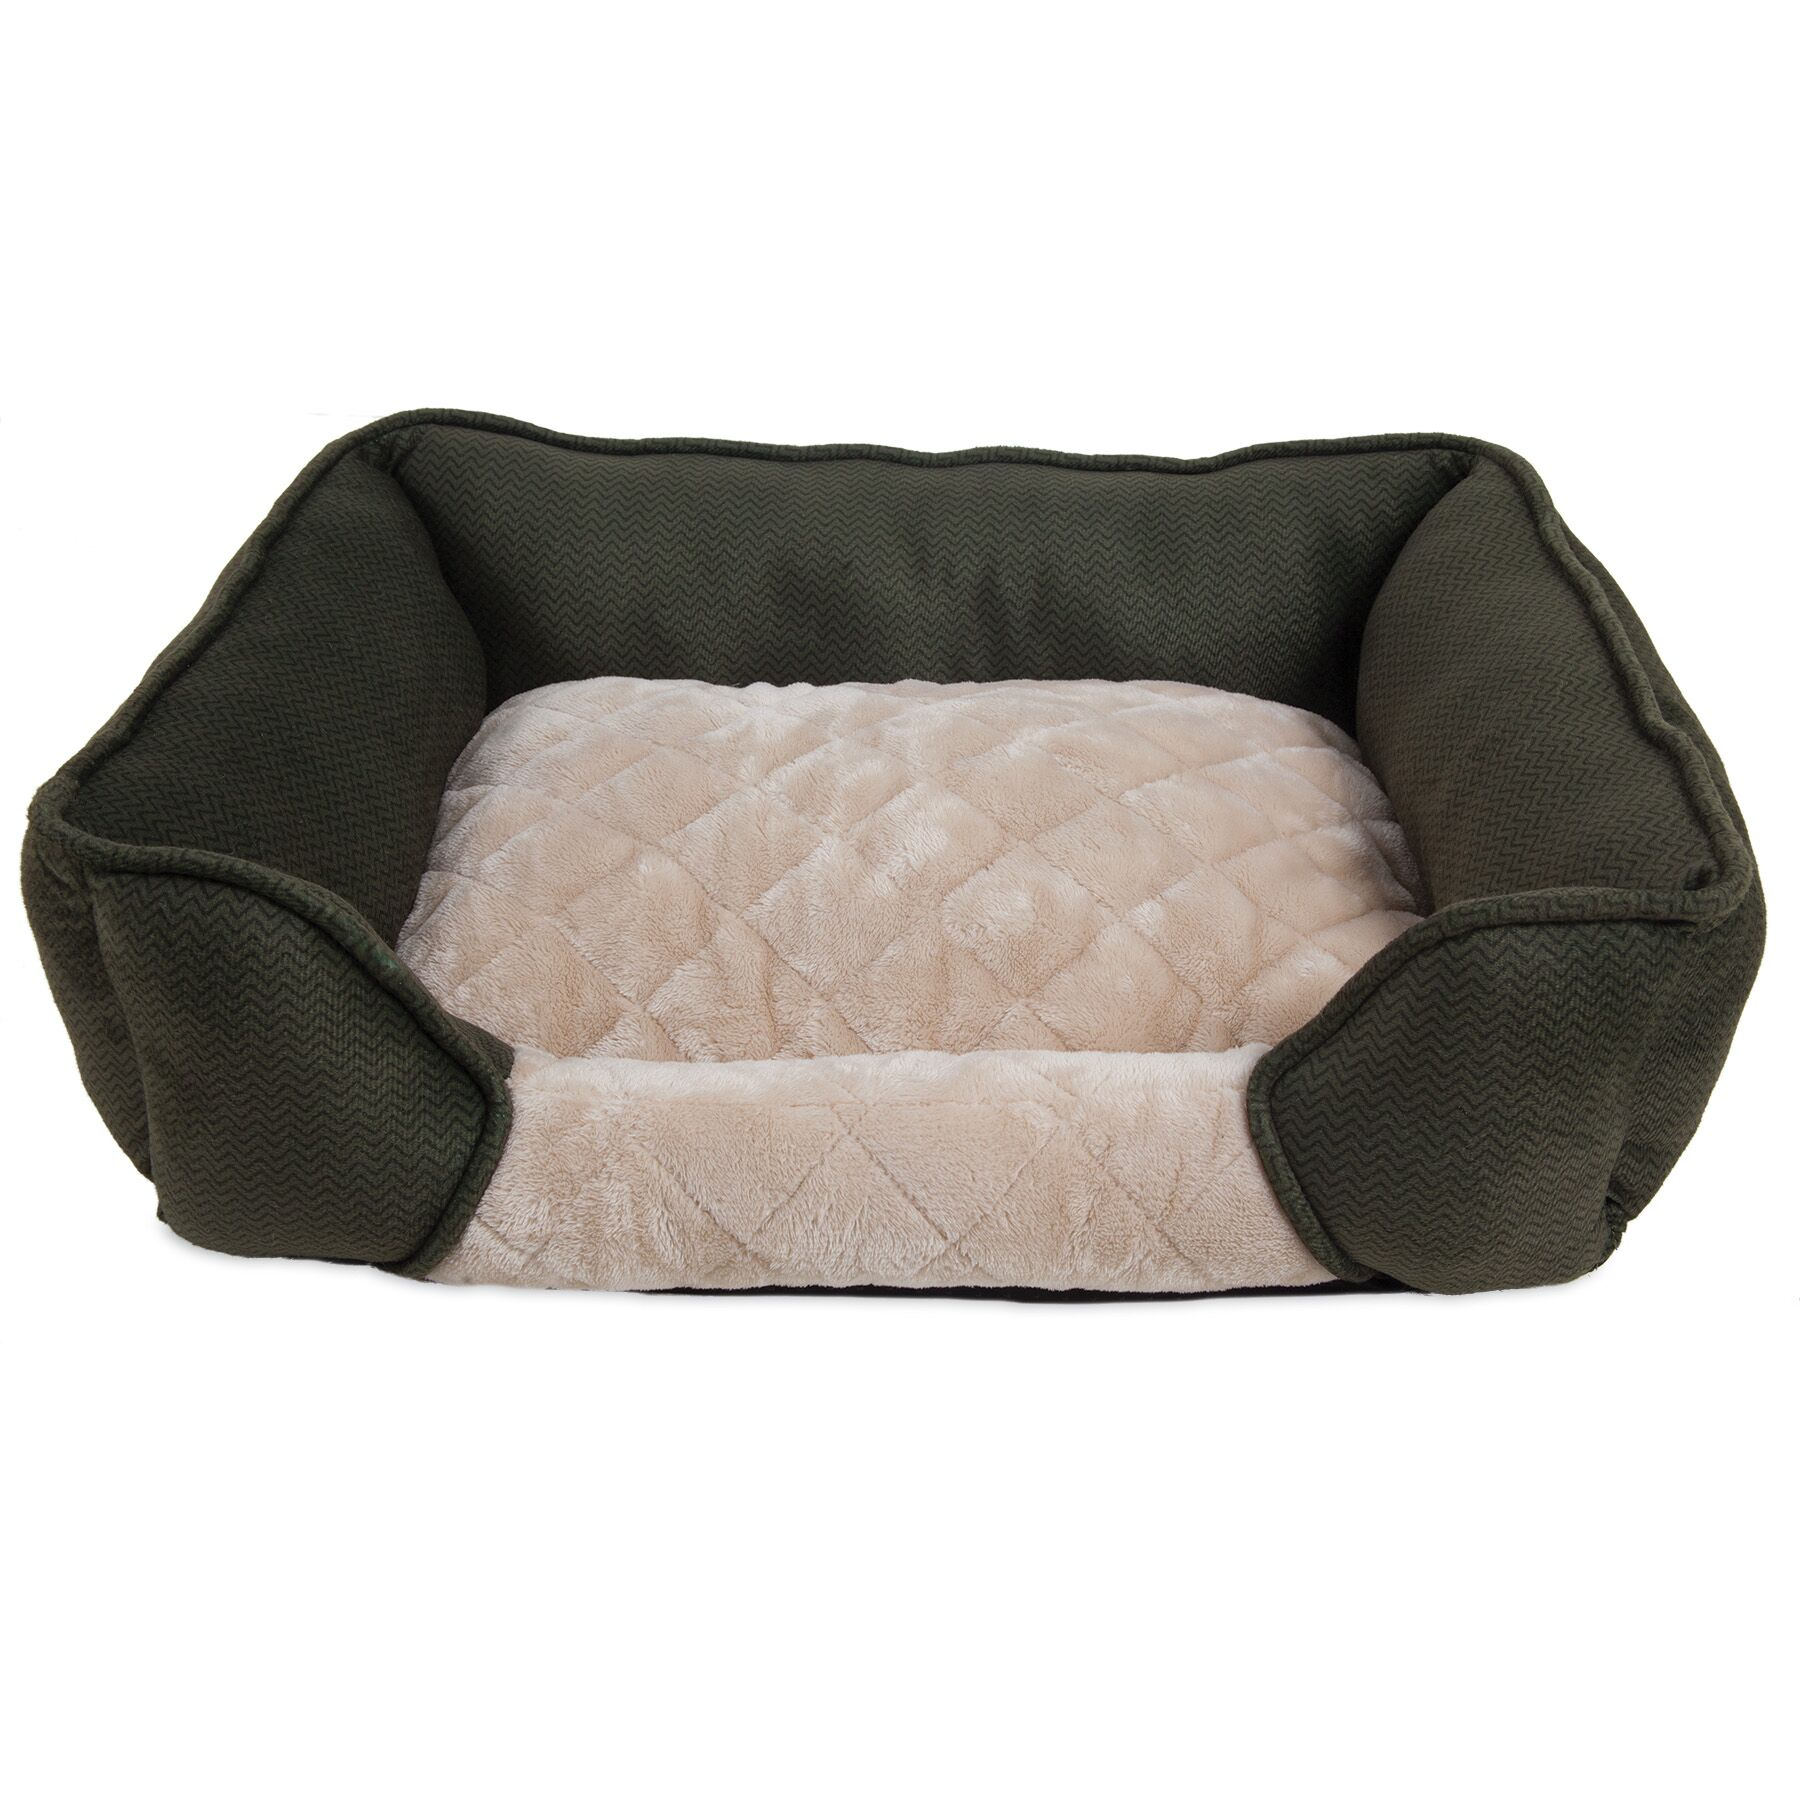 Thalia Quilted Rectangular Lounger Bolster Dog Bed